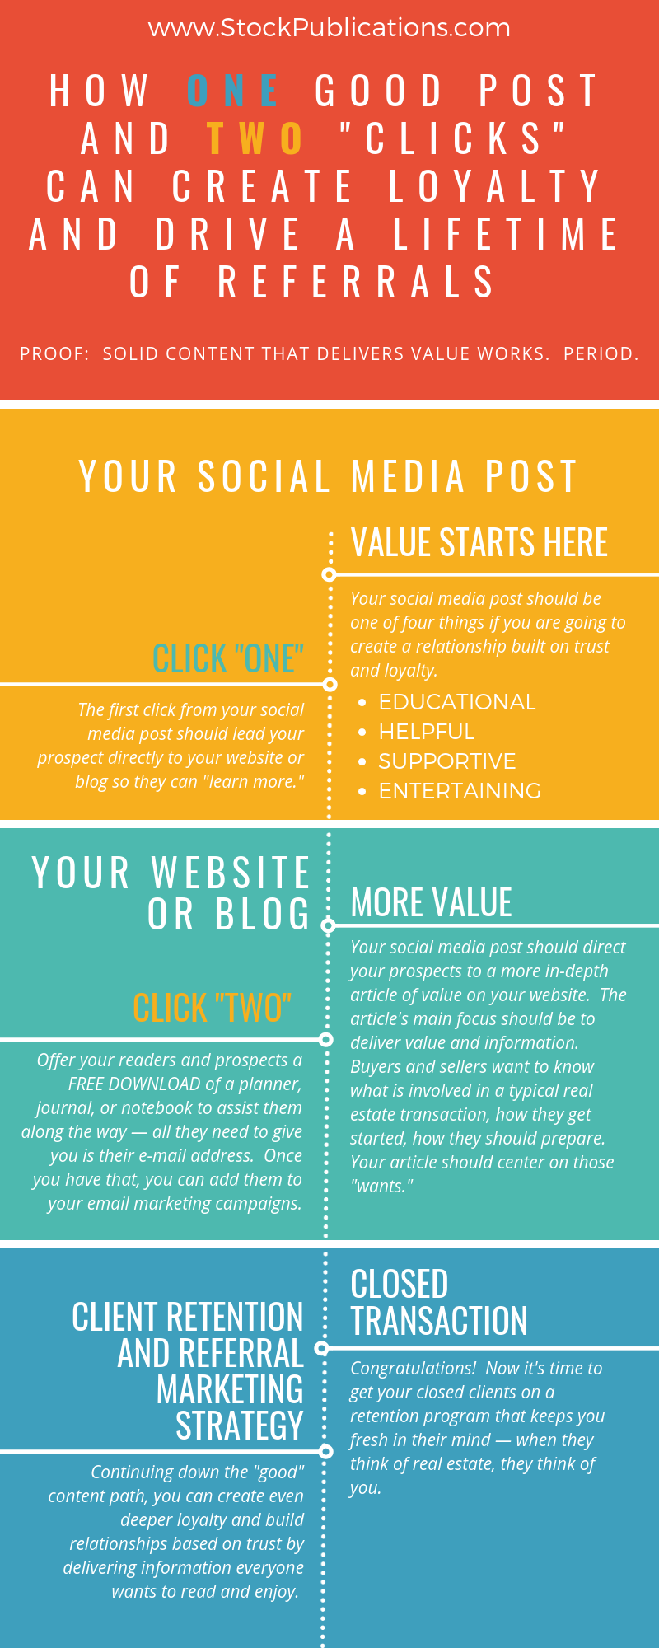 infographic how one good post and two clicks can create loyalty and drive a lifetime of referrals infographic